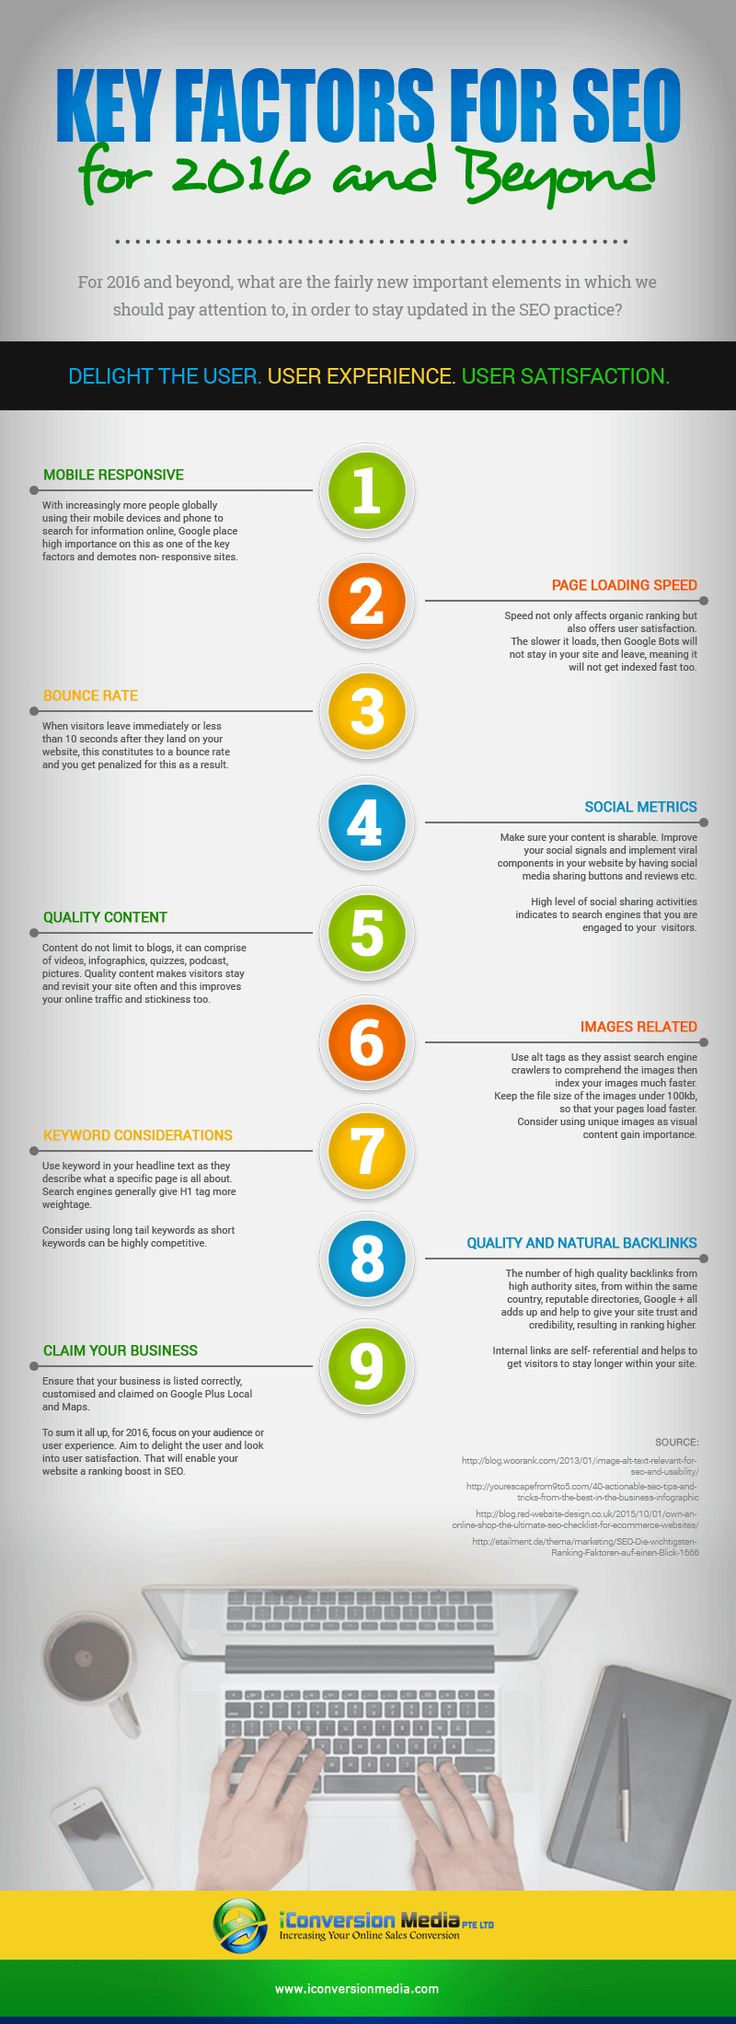 Key Factors for SEO for 2016 and Beyond | iConversion Media